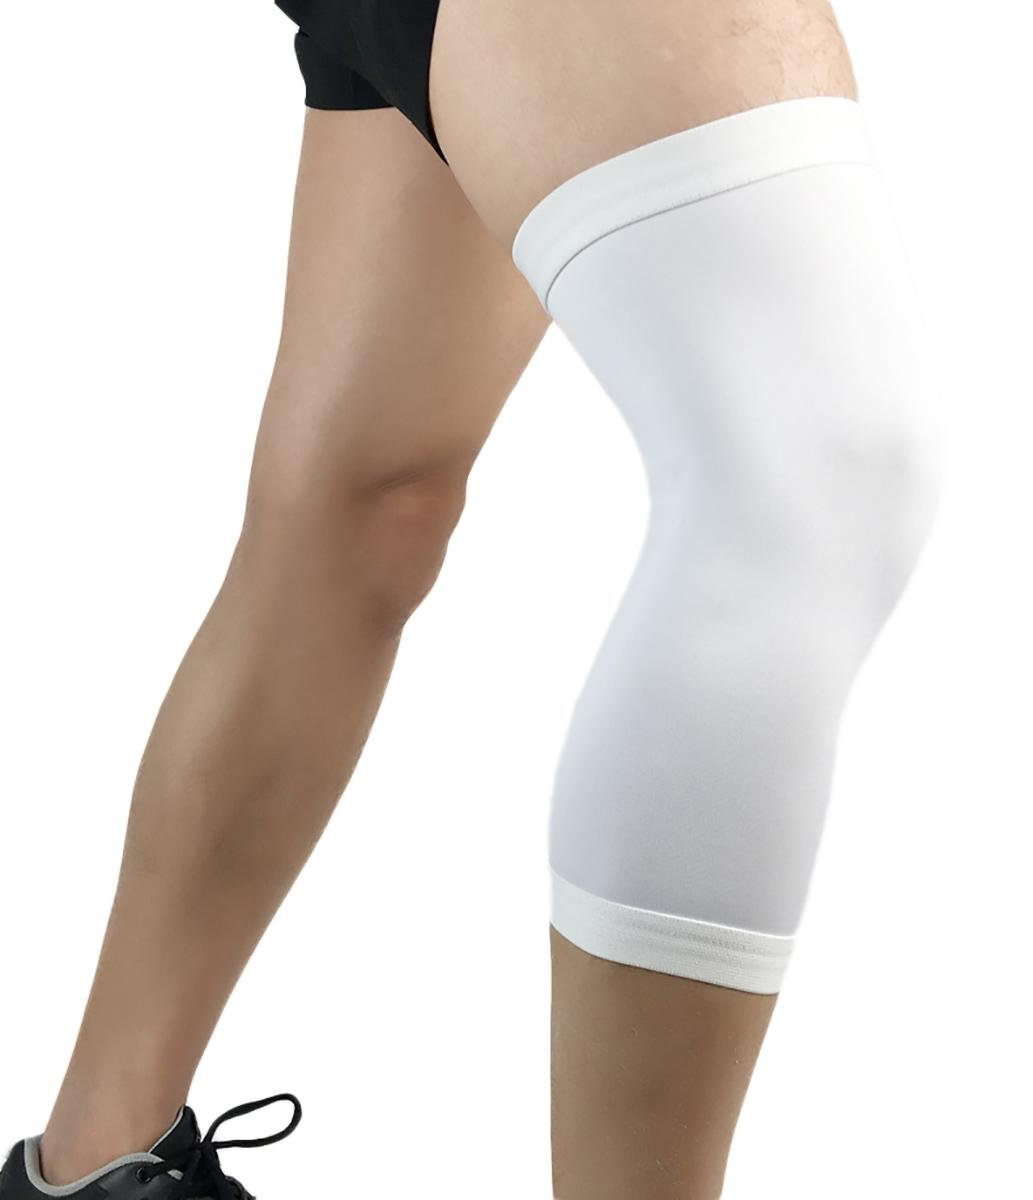 sports knee pads basketball breathable compression tights outdoor run fitness riding protective supplies m / l / xl (A pair)